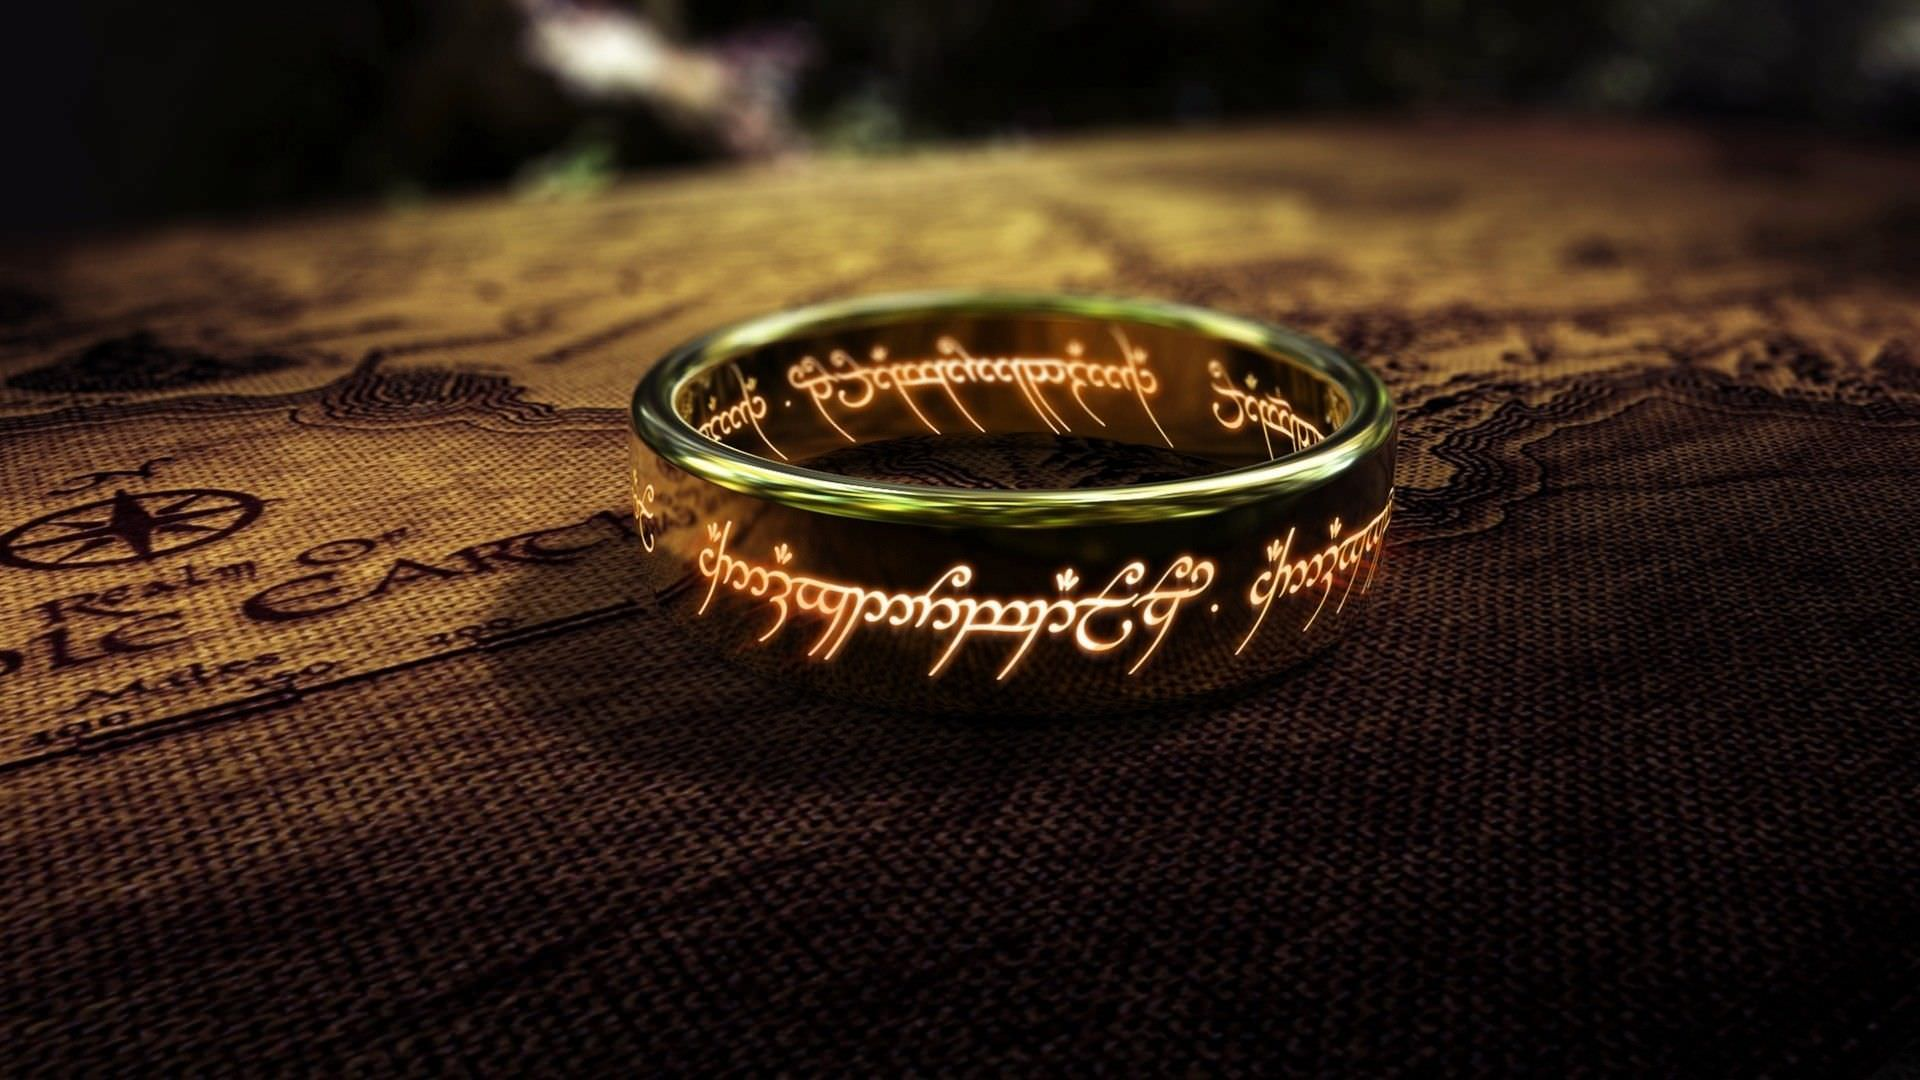 One Ring In The Lord of the Rings